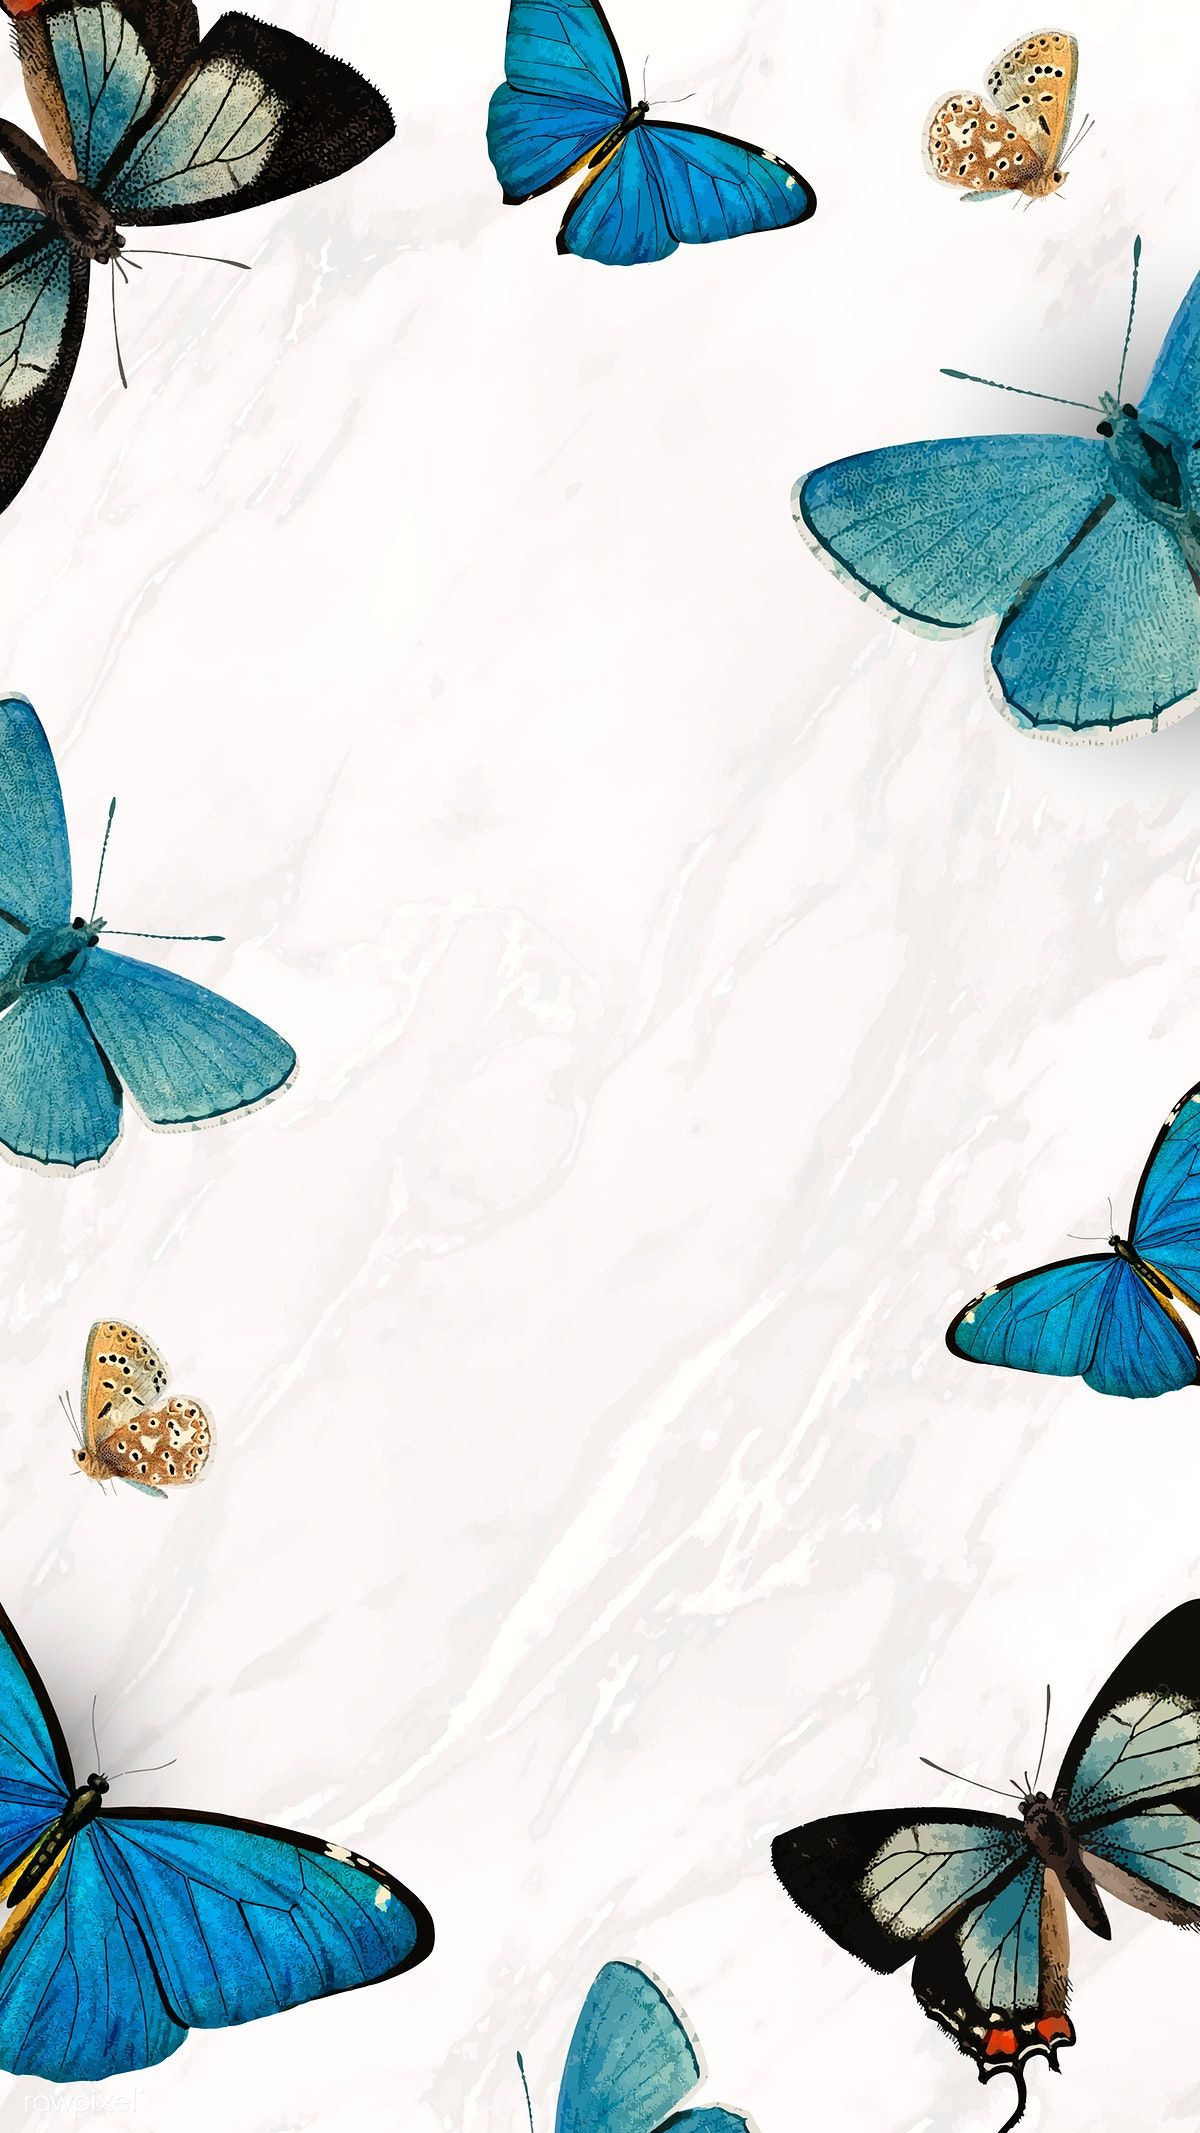 Download premium vector of Blue butterflies patterned on white mobile